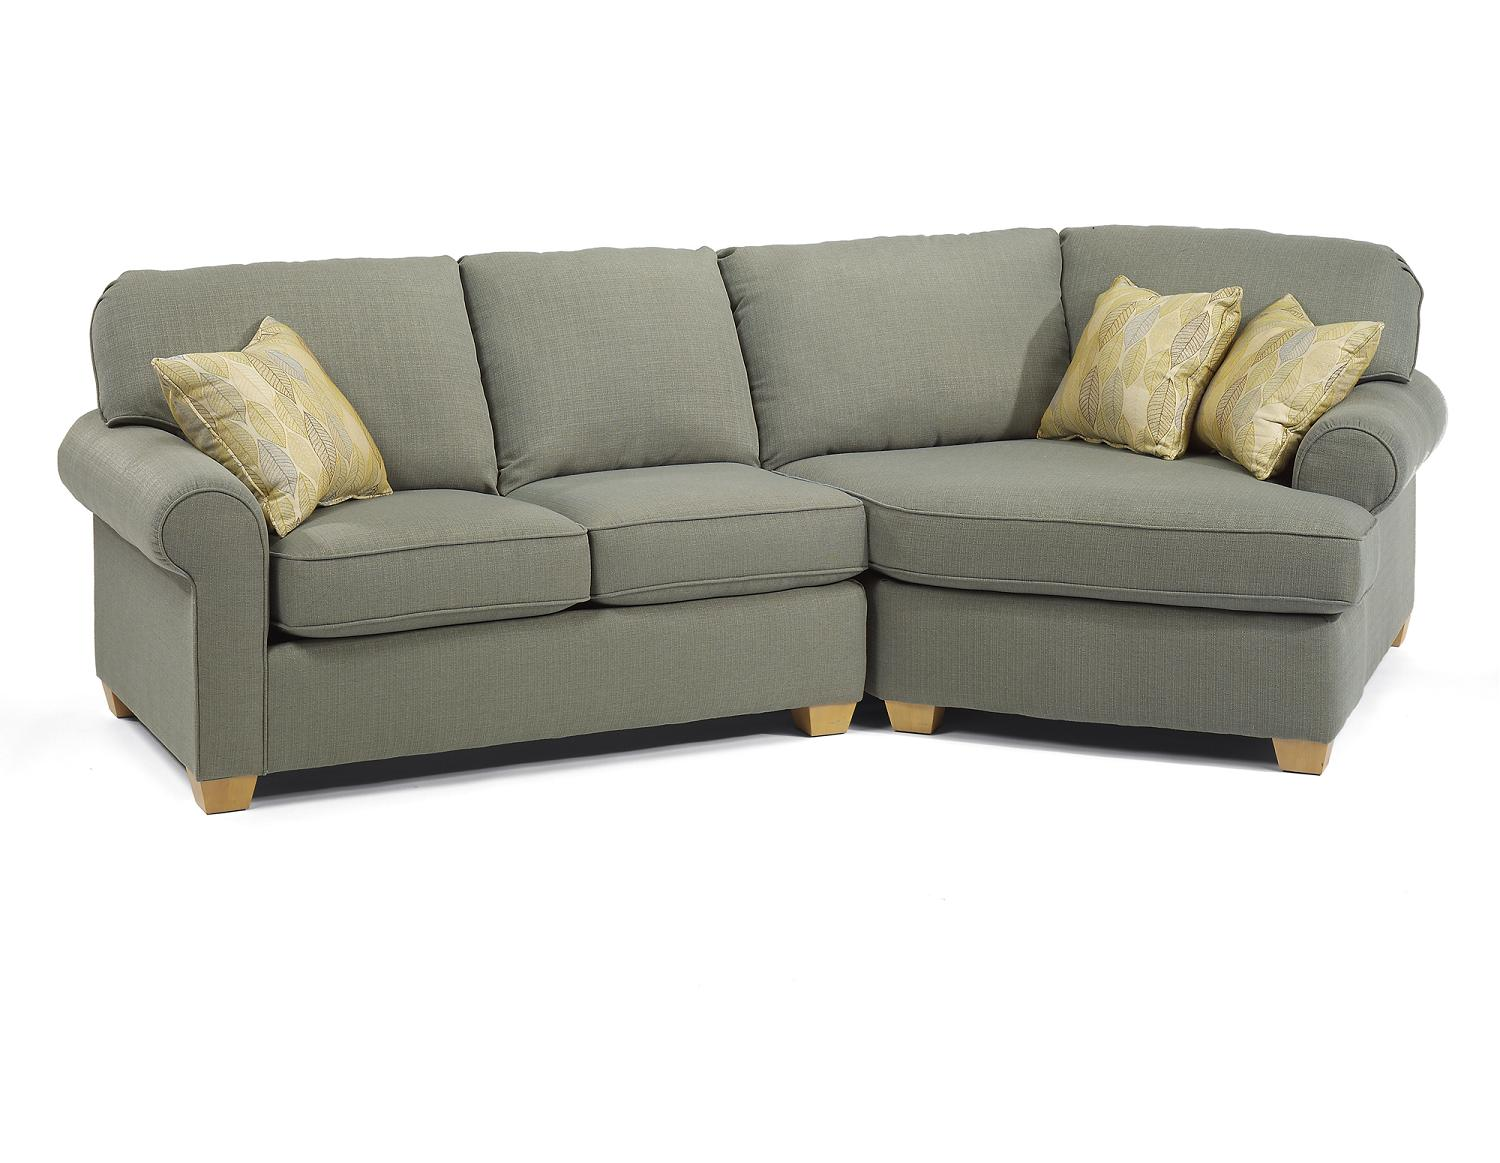 Cheap sectional sofas under 100 couch sofa ideas for Chaise lounge cheap